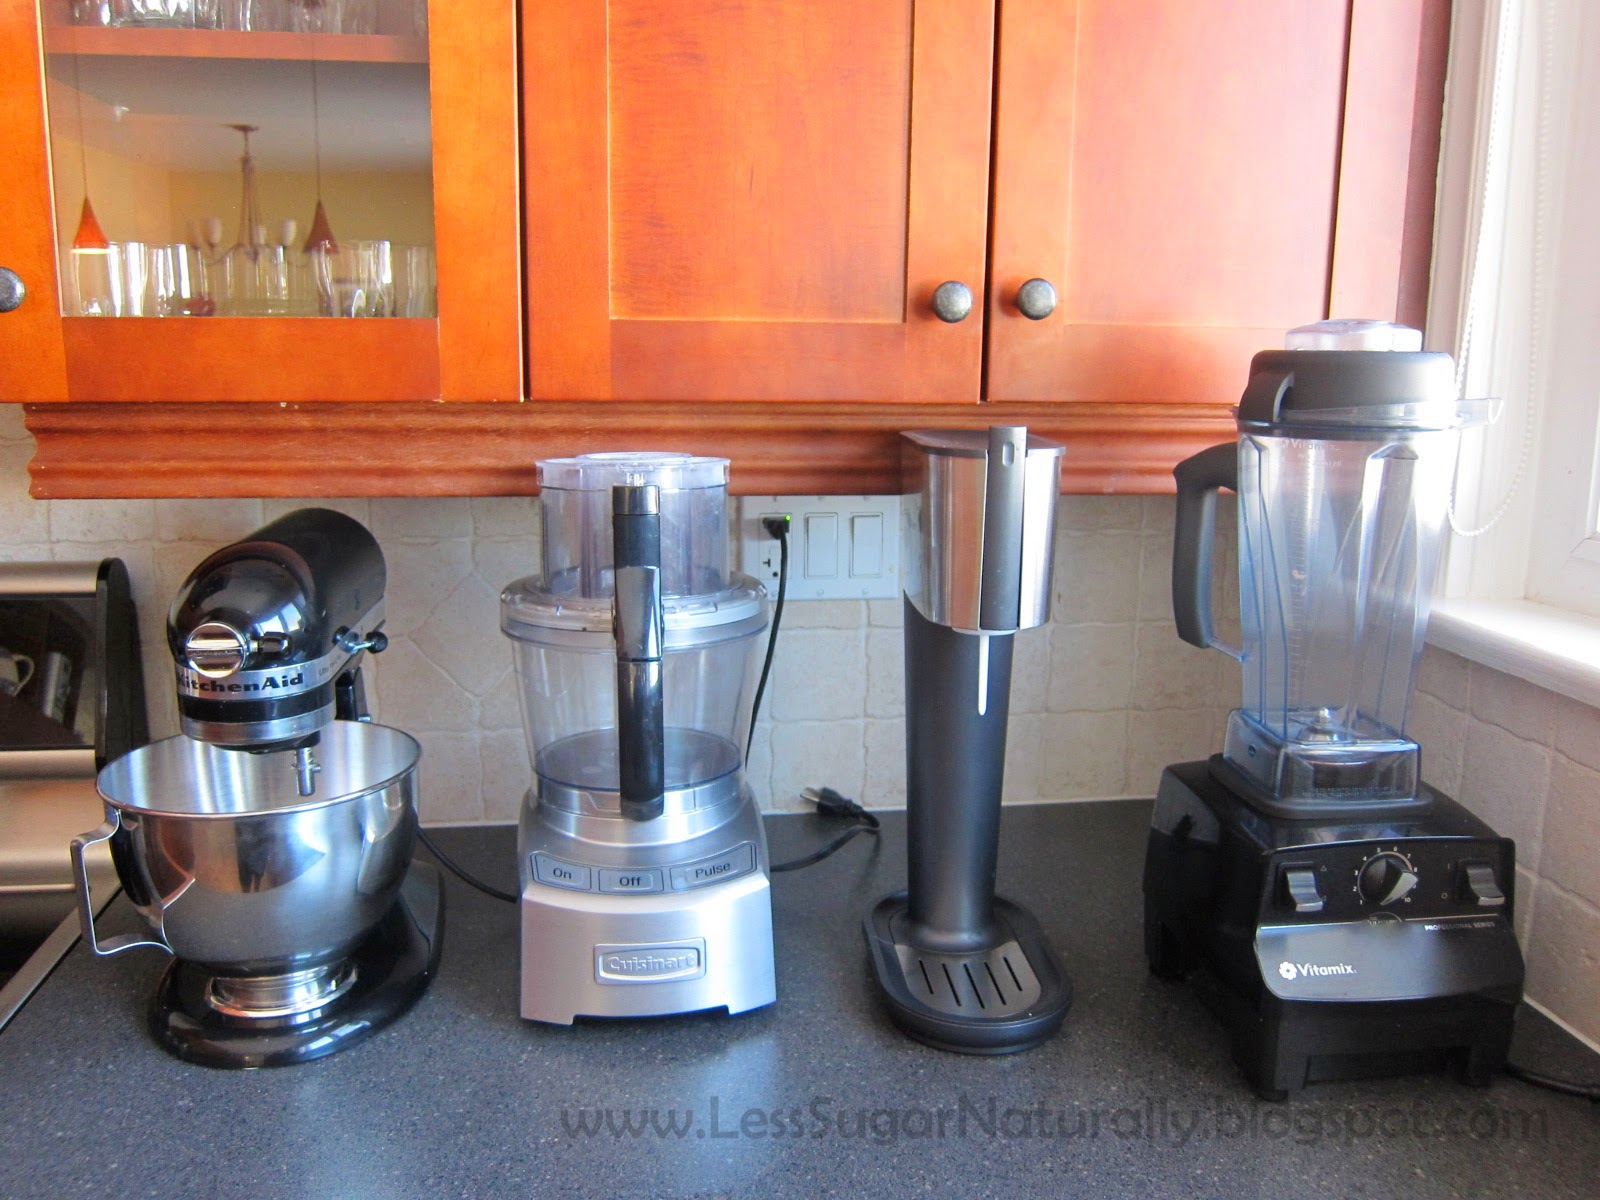 Differences between Vitamix models?